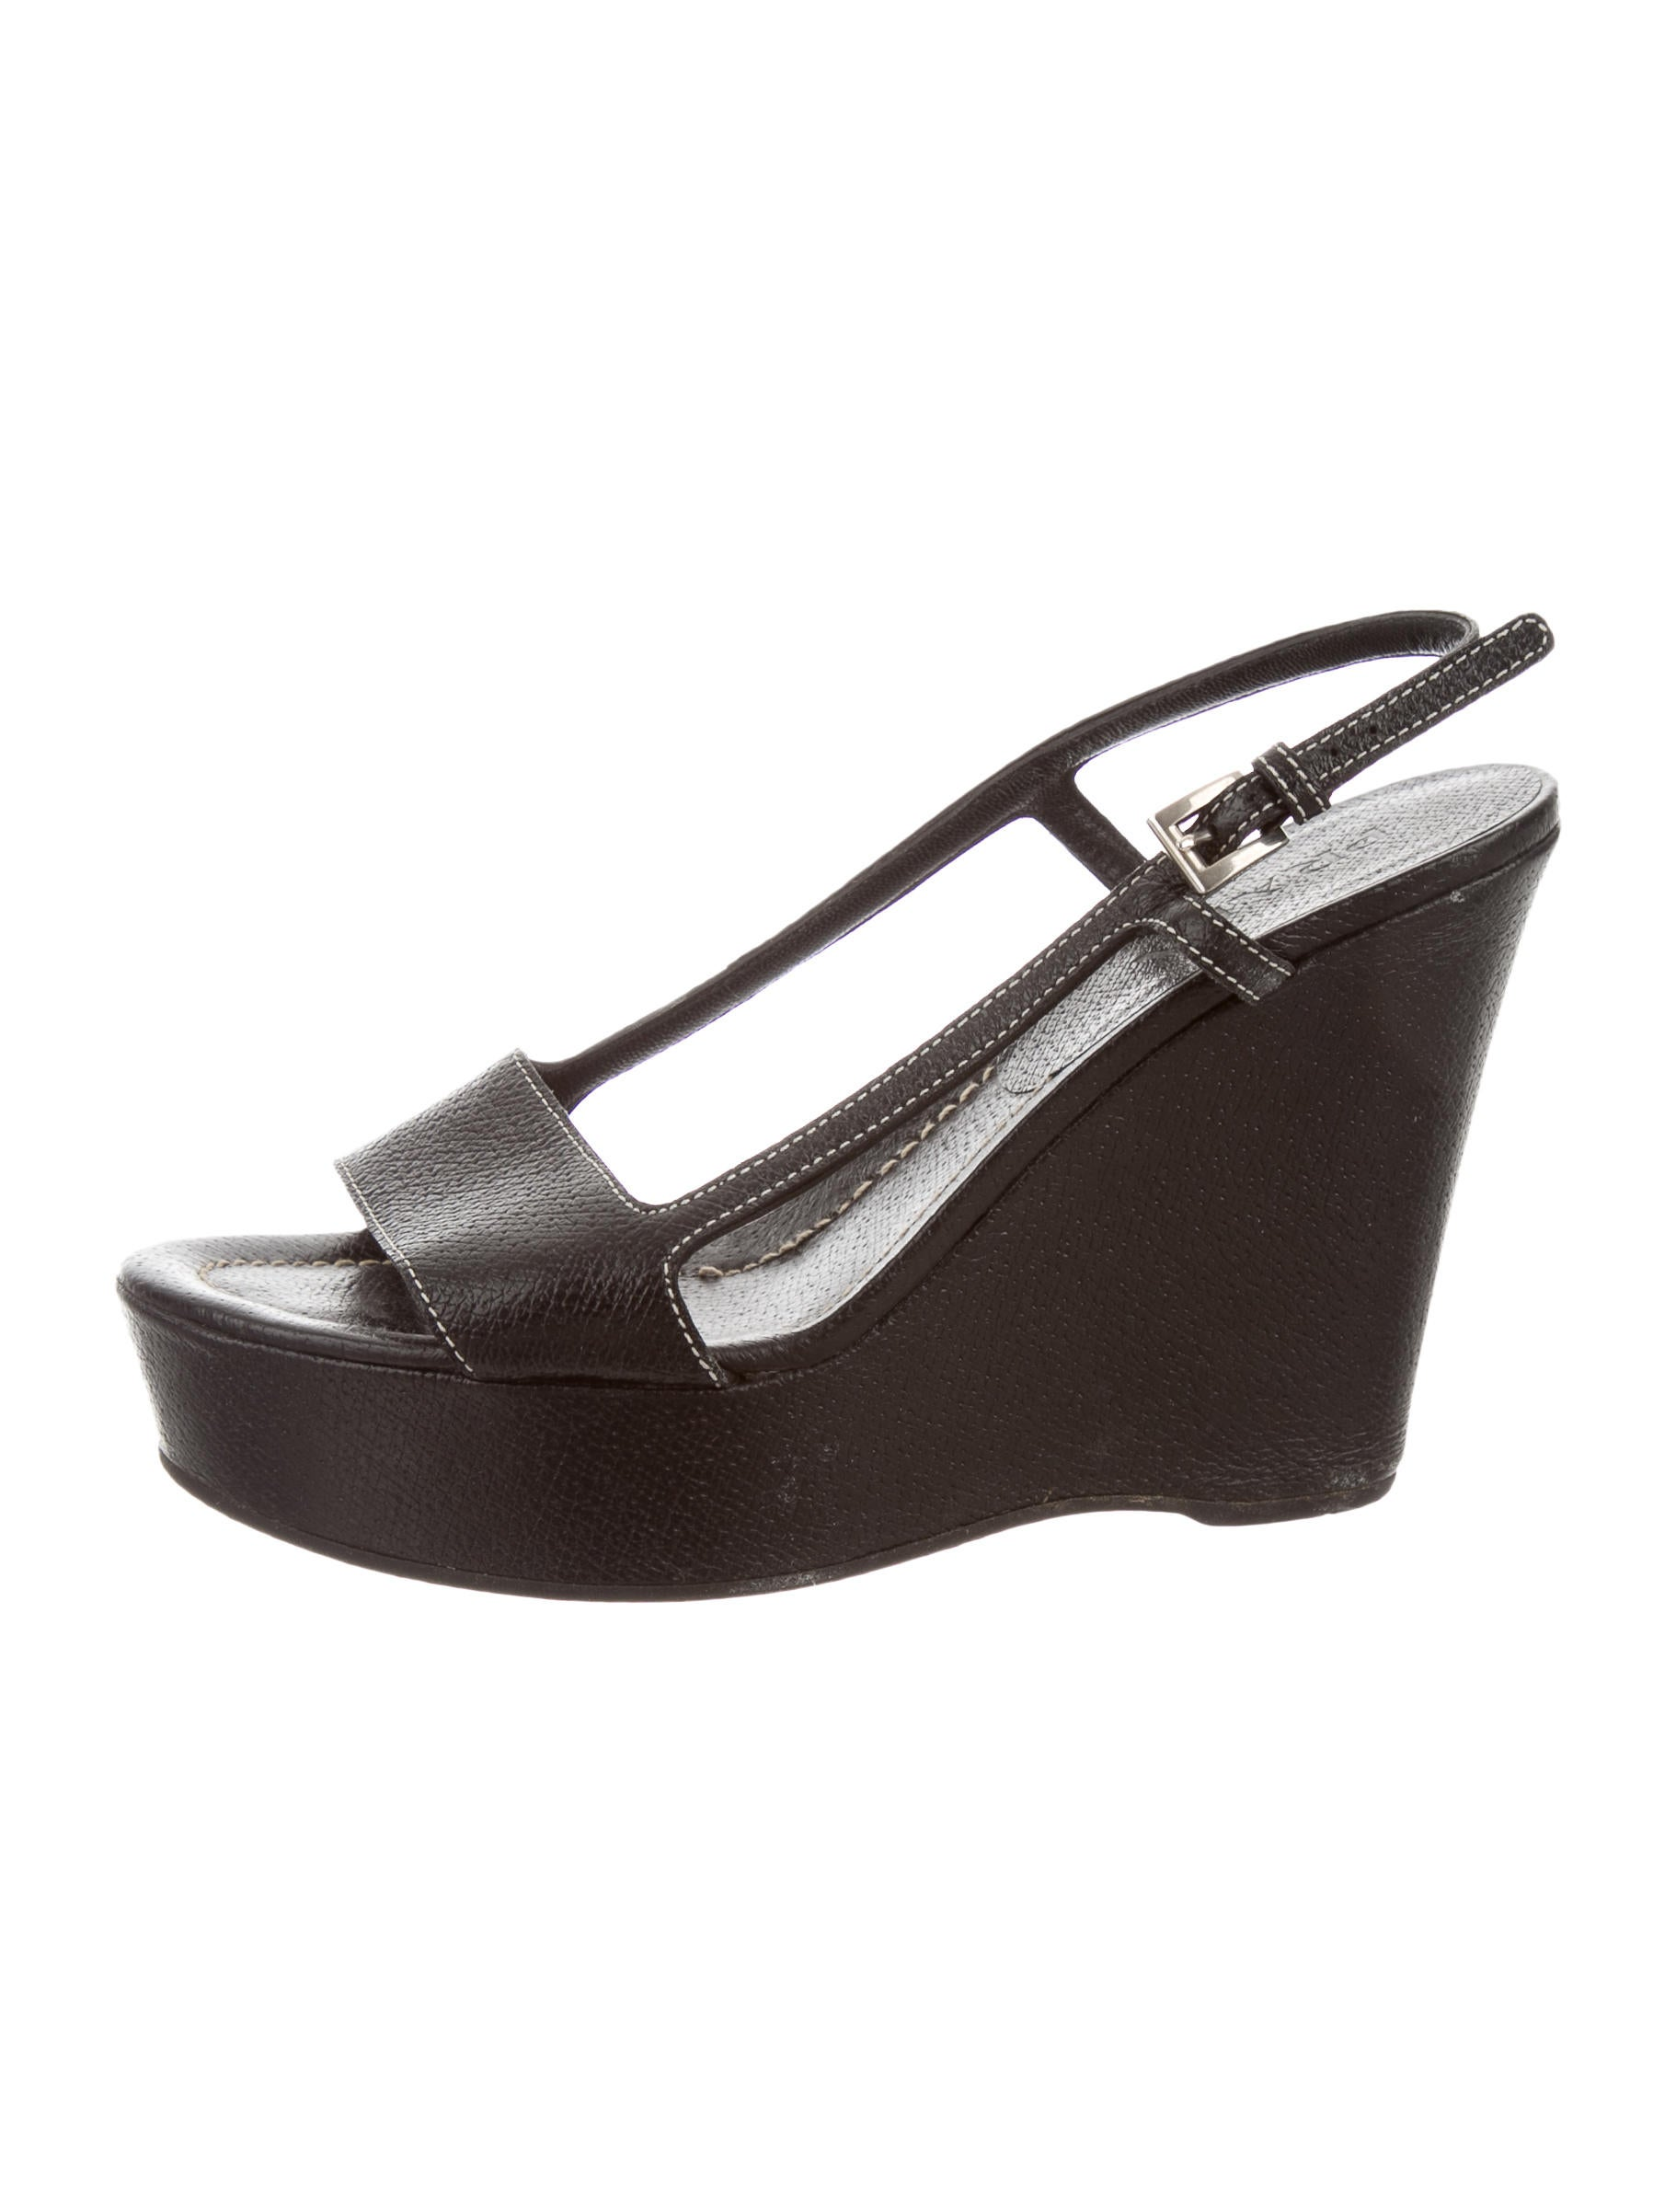 prada leather wedge sandals shoes pra109868 the realreal